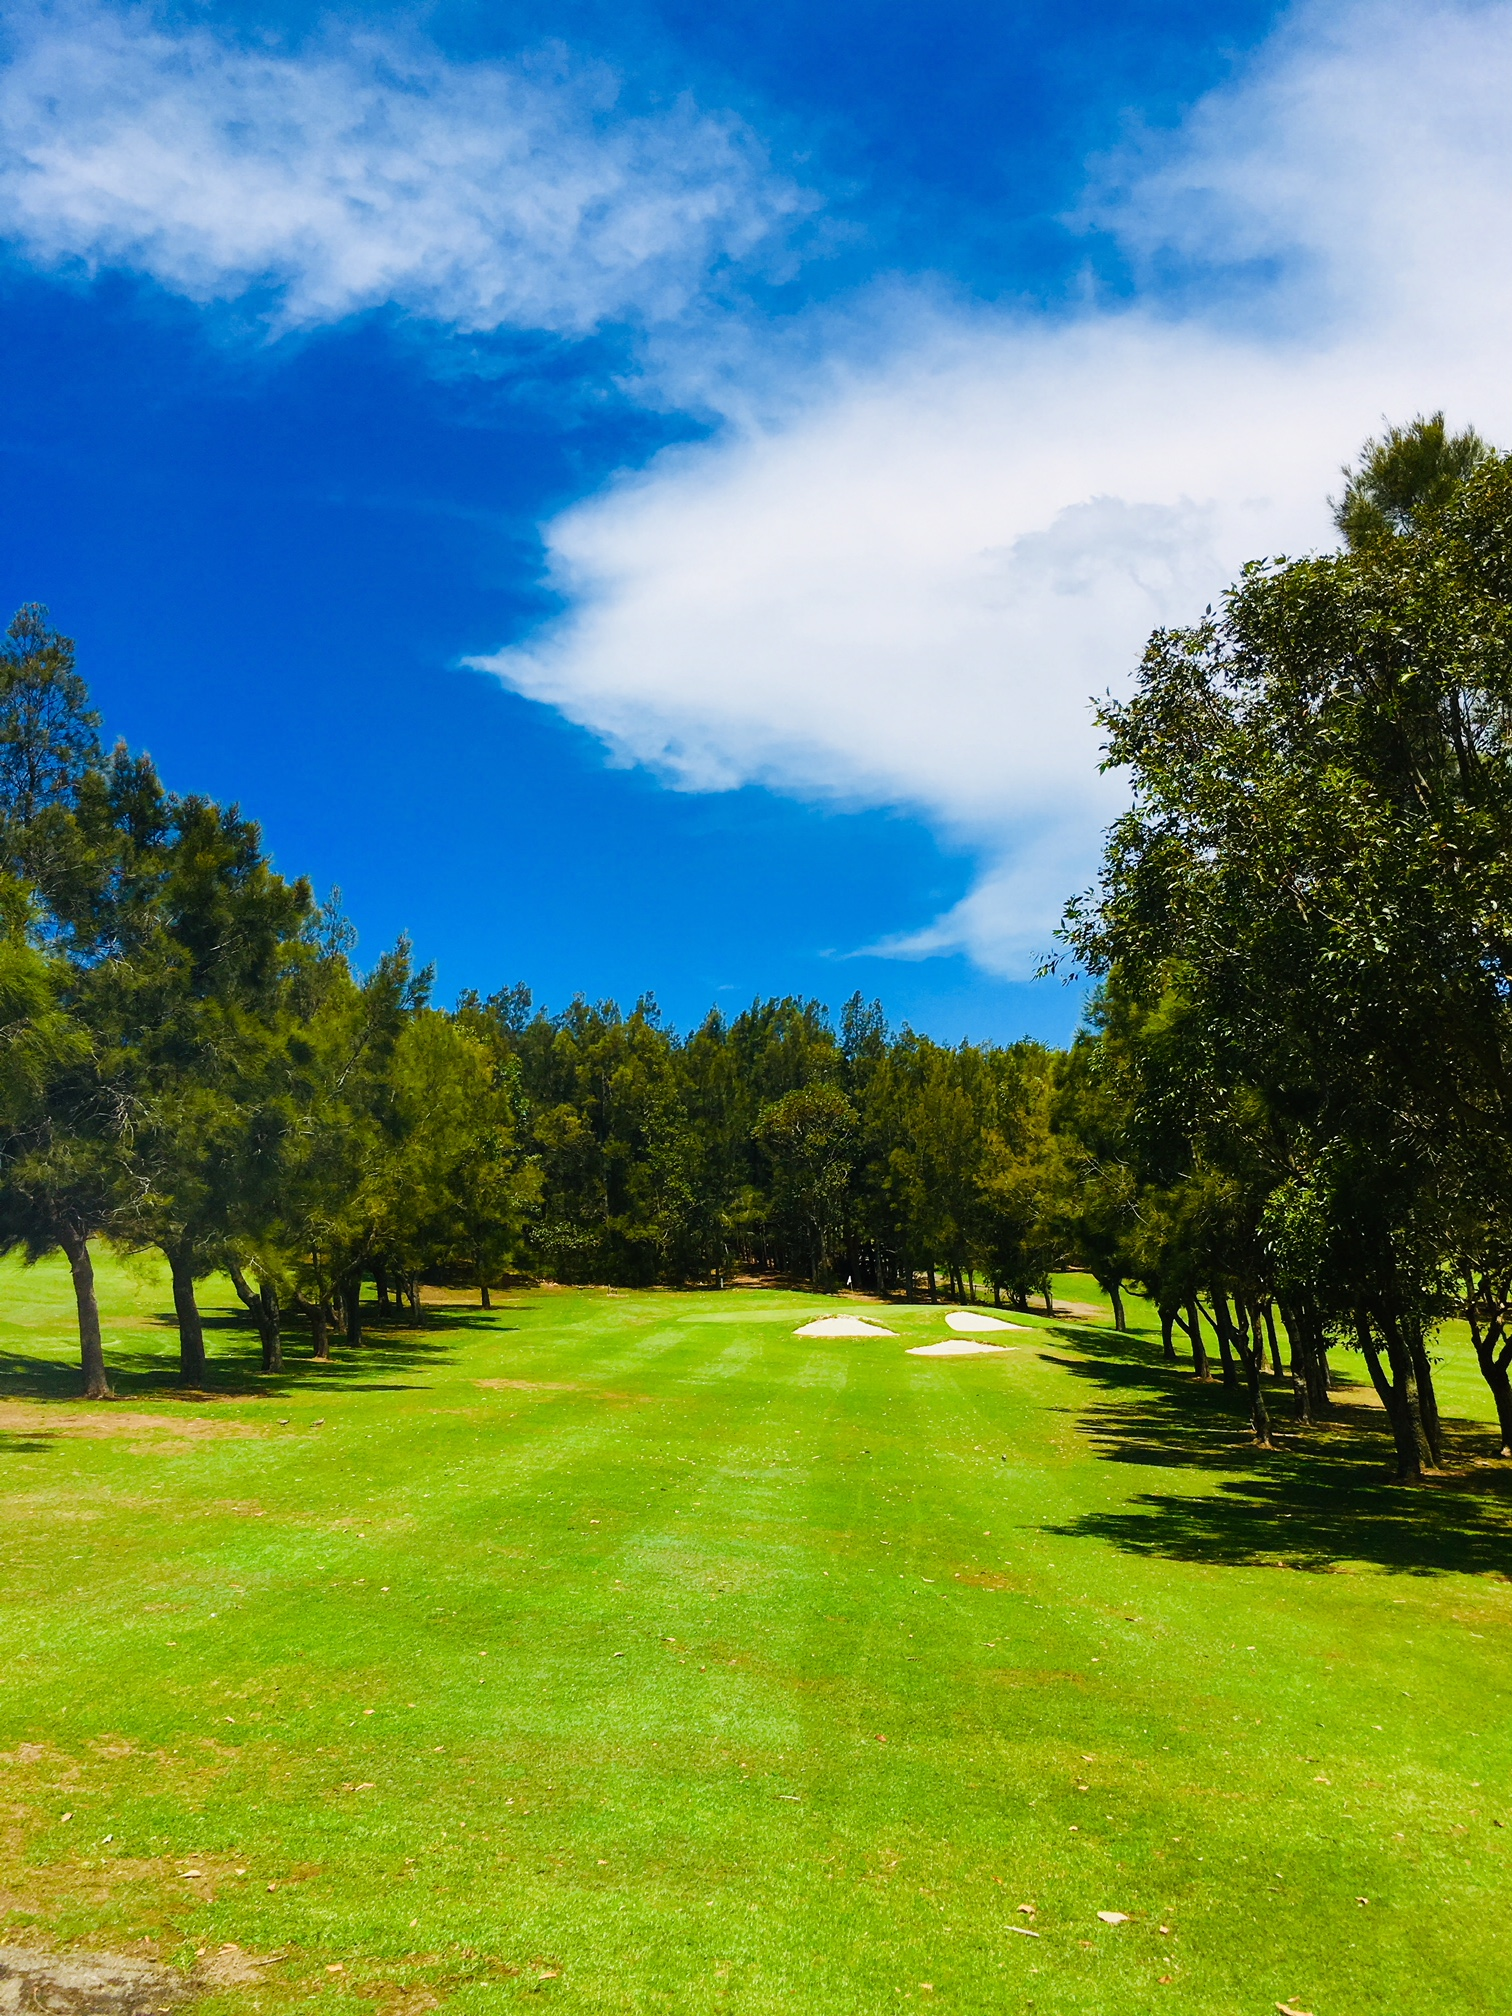 Hole One - PAR 3 -121 metresThe first hole is welcoming par 3 that requires a short to mid iron off the tee. Aim to the left allowing the ball to work down towards the green.